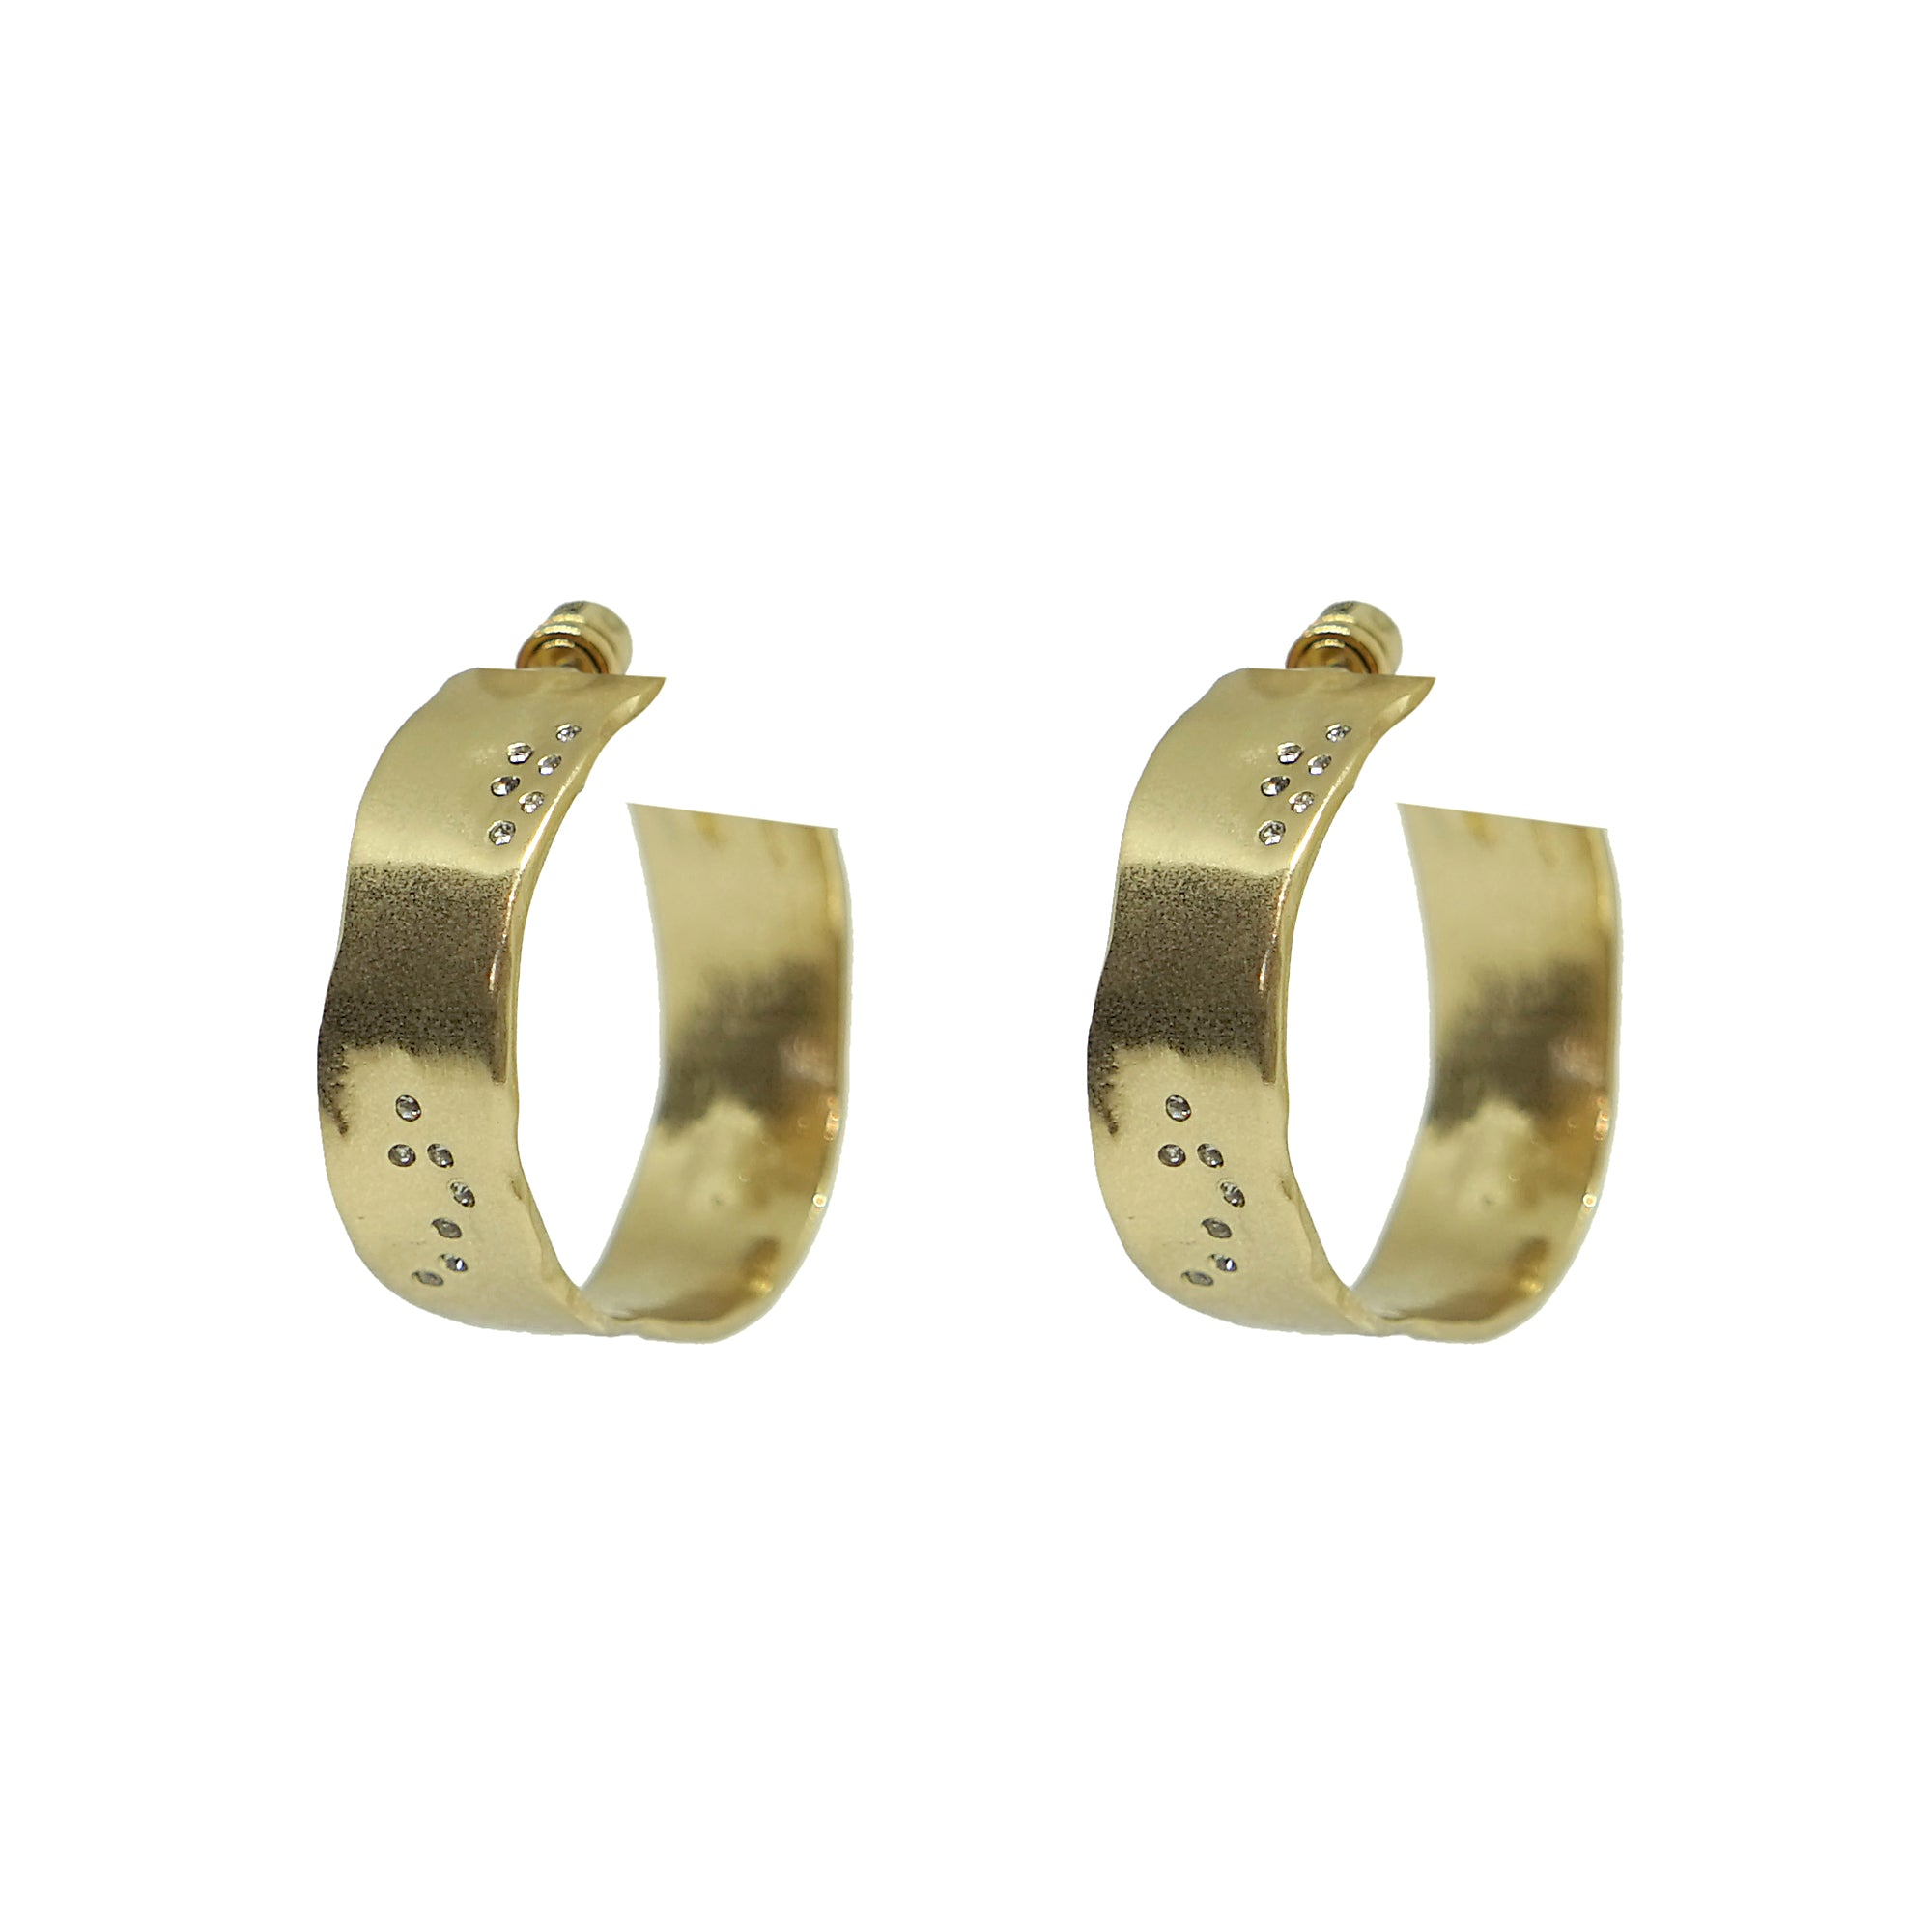 "GOLD WIDE 1.5"" IMPRESSION HOOPS"